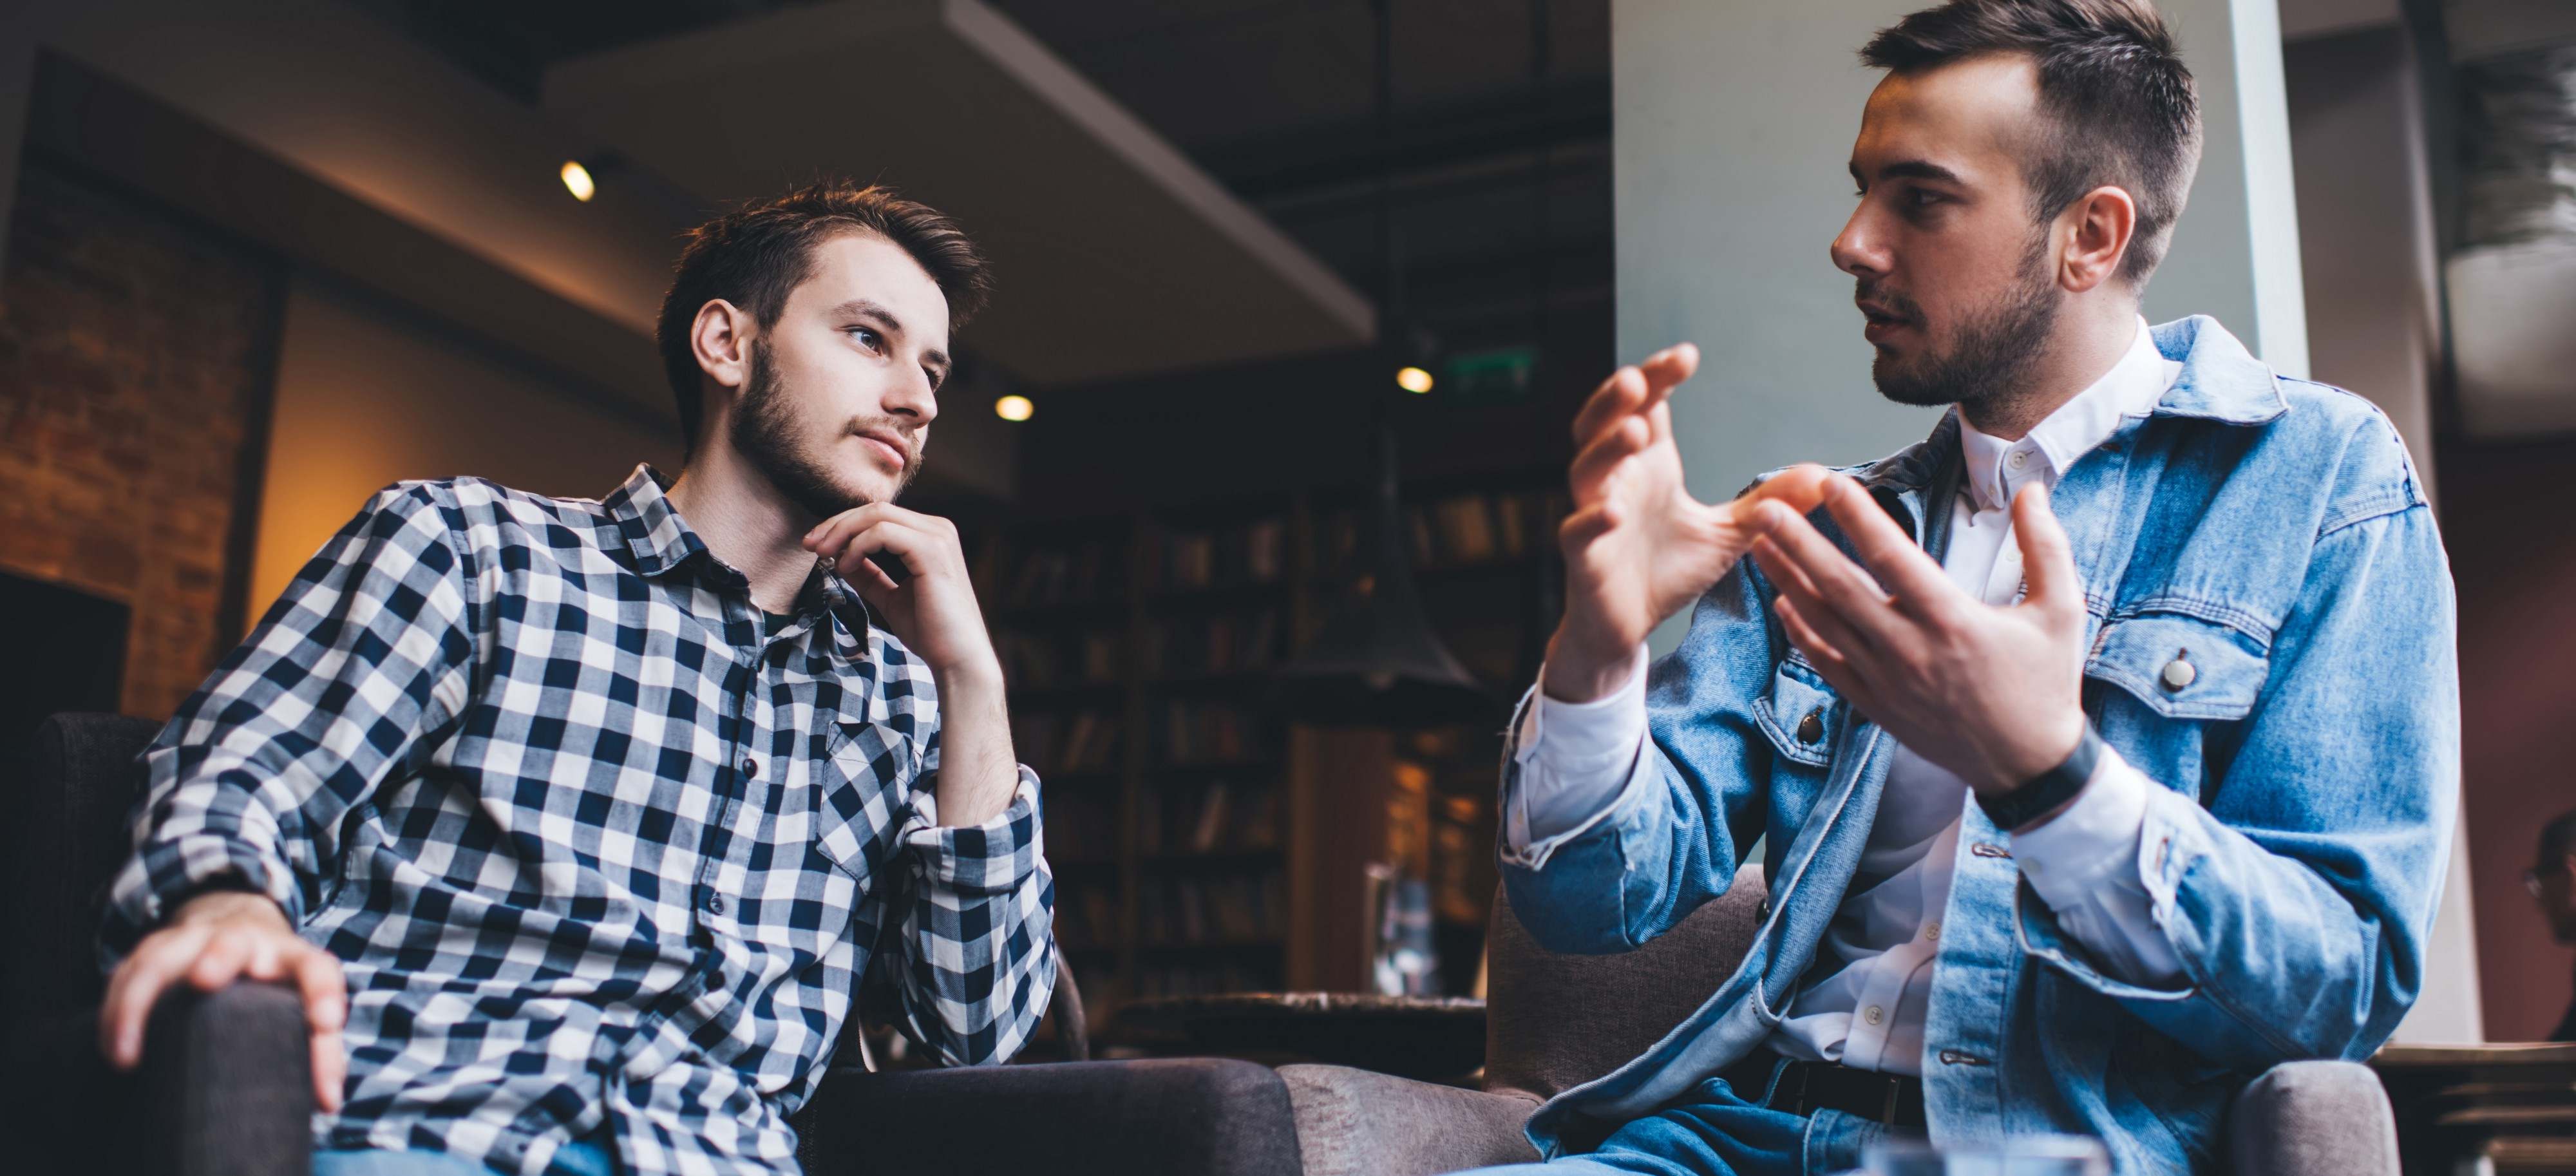 Photo of two men engaging in a discussion. Photo Credit: Adobe Stock Images.